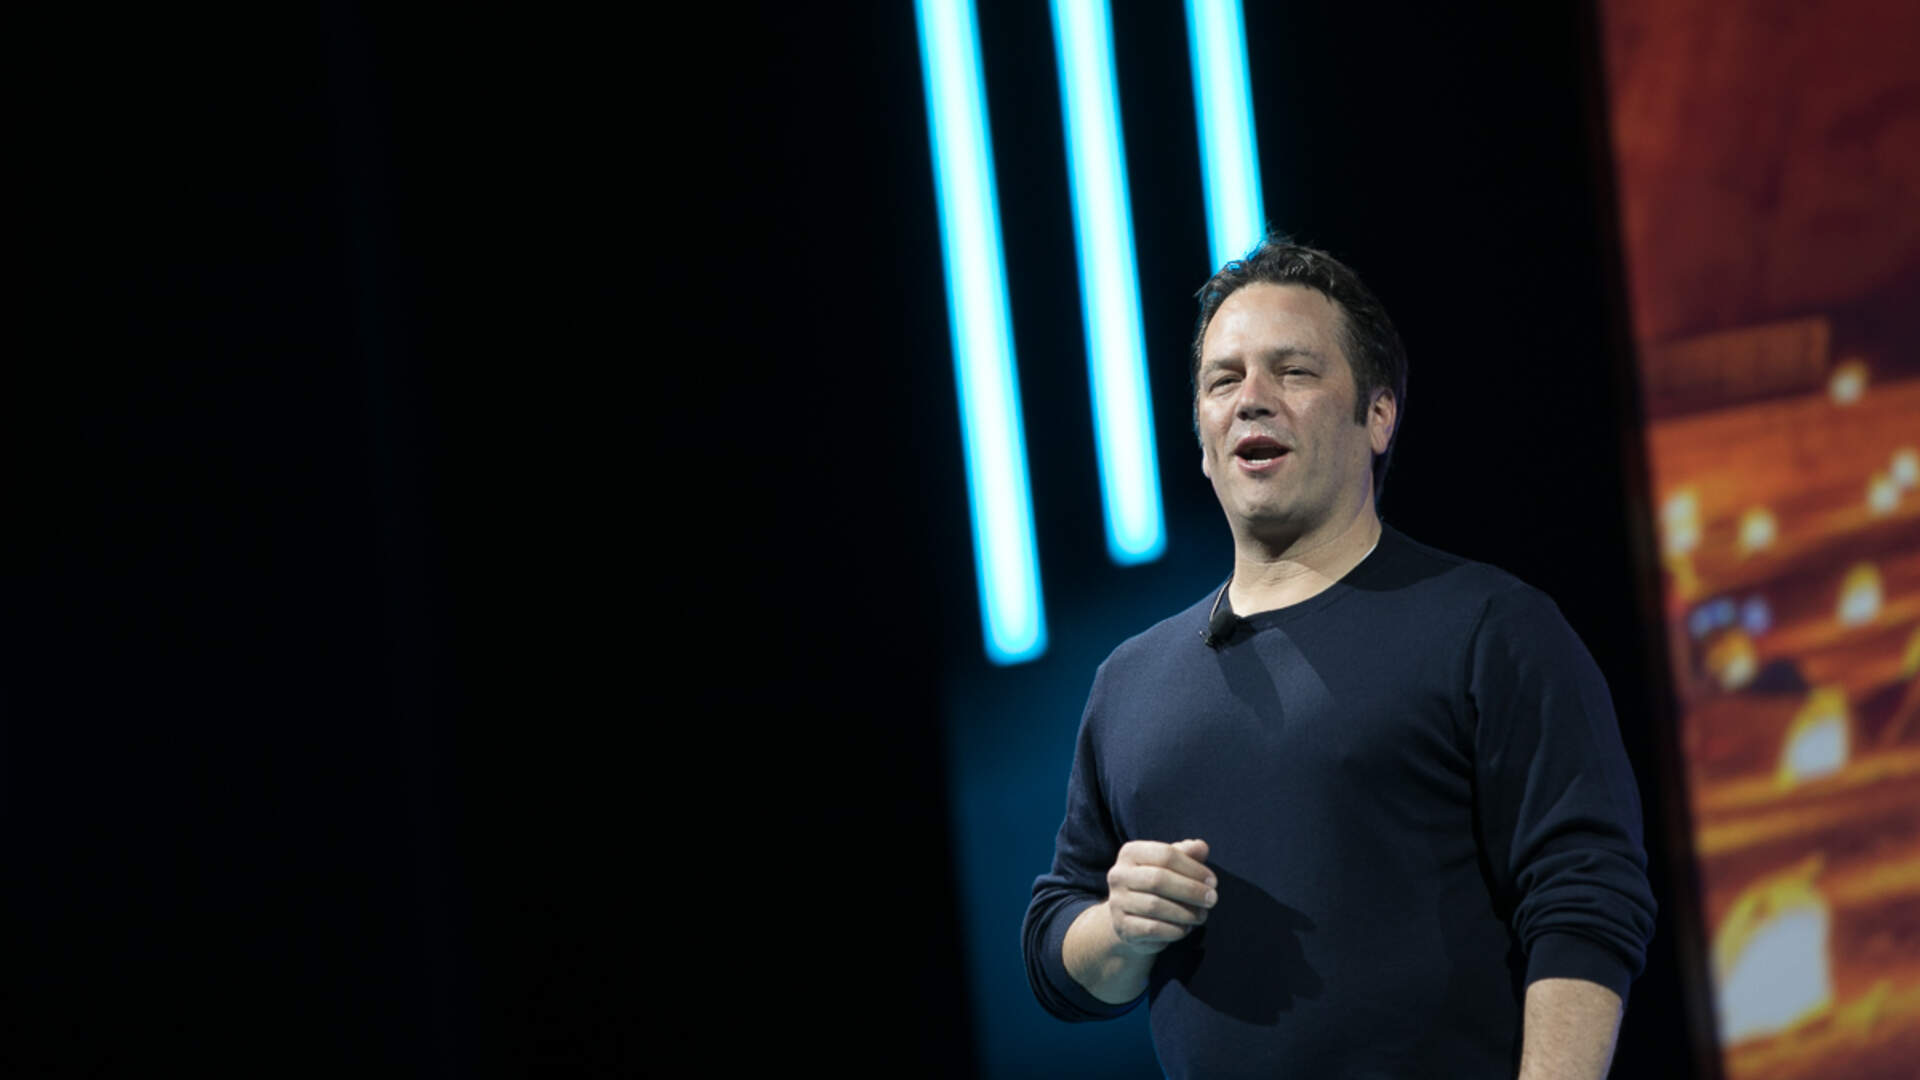 Xbox's Phil Spencer Says 2021's Games Are More Likely to Feel Impact of the Pandemic